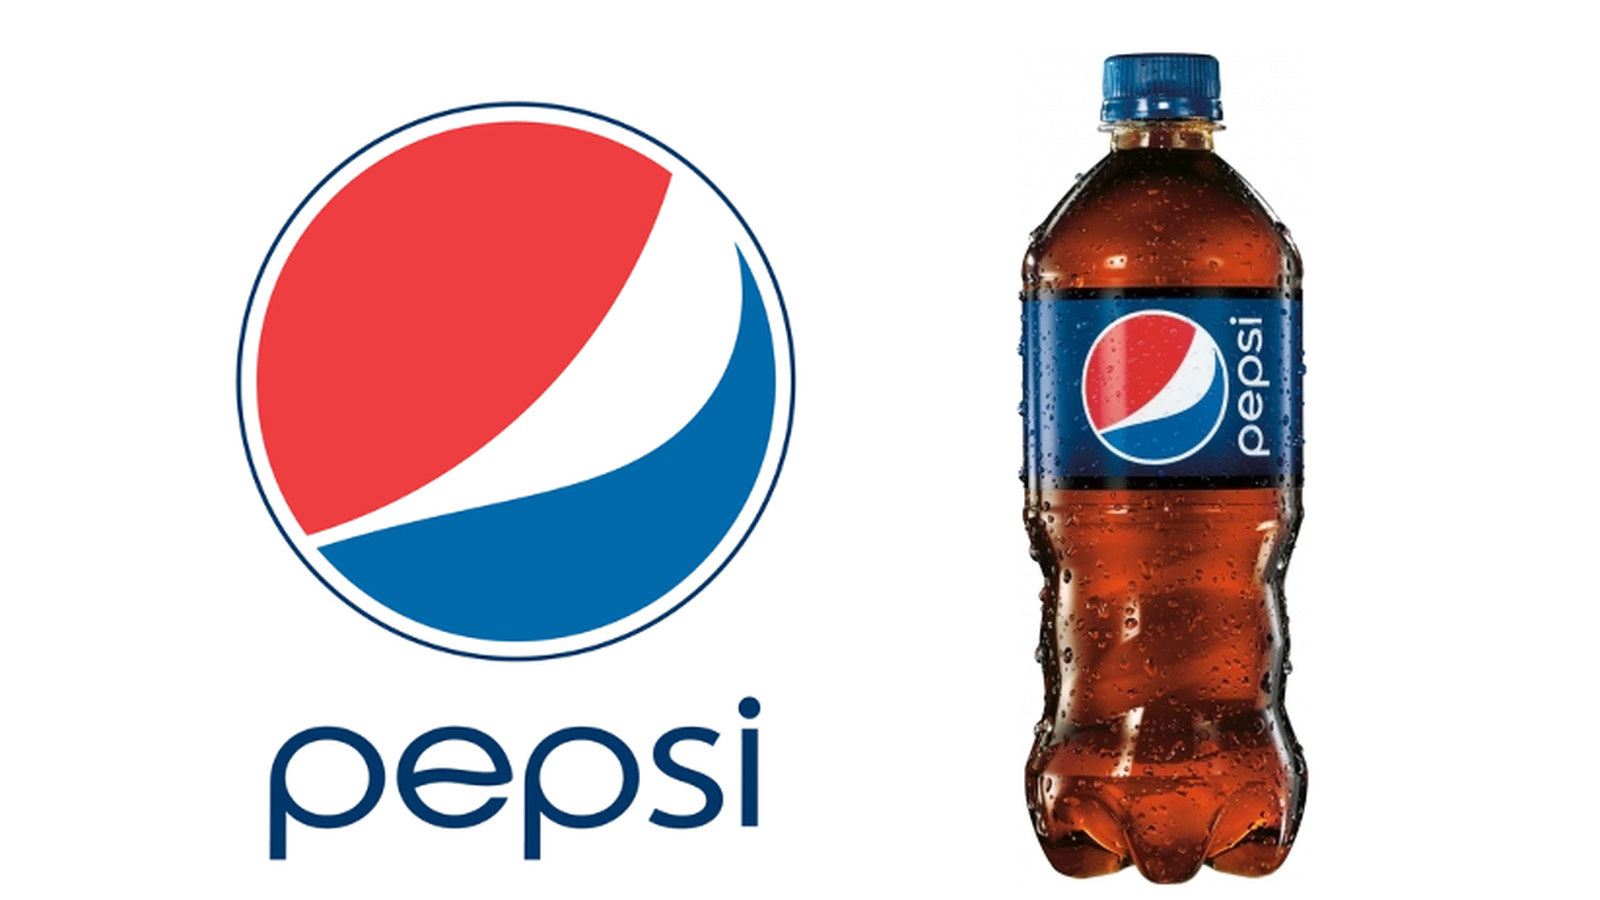 Pepsi attempts to make its bottle more iconic with first ...